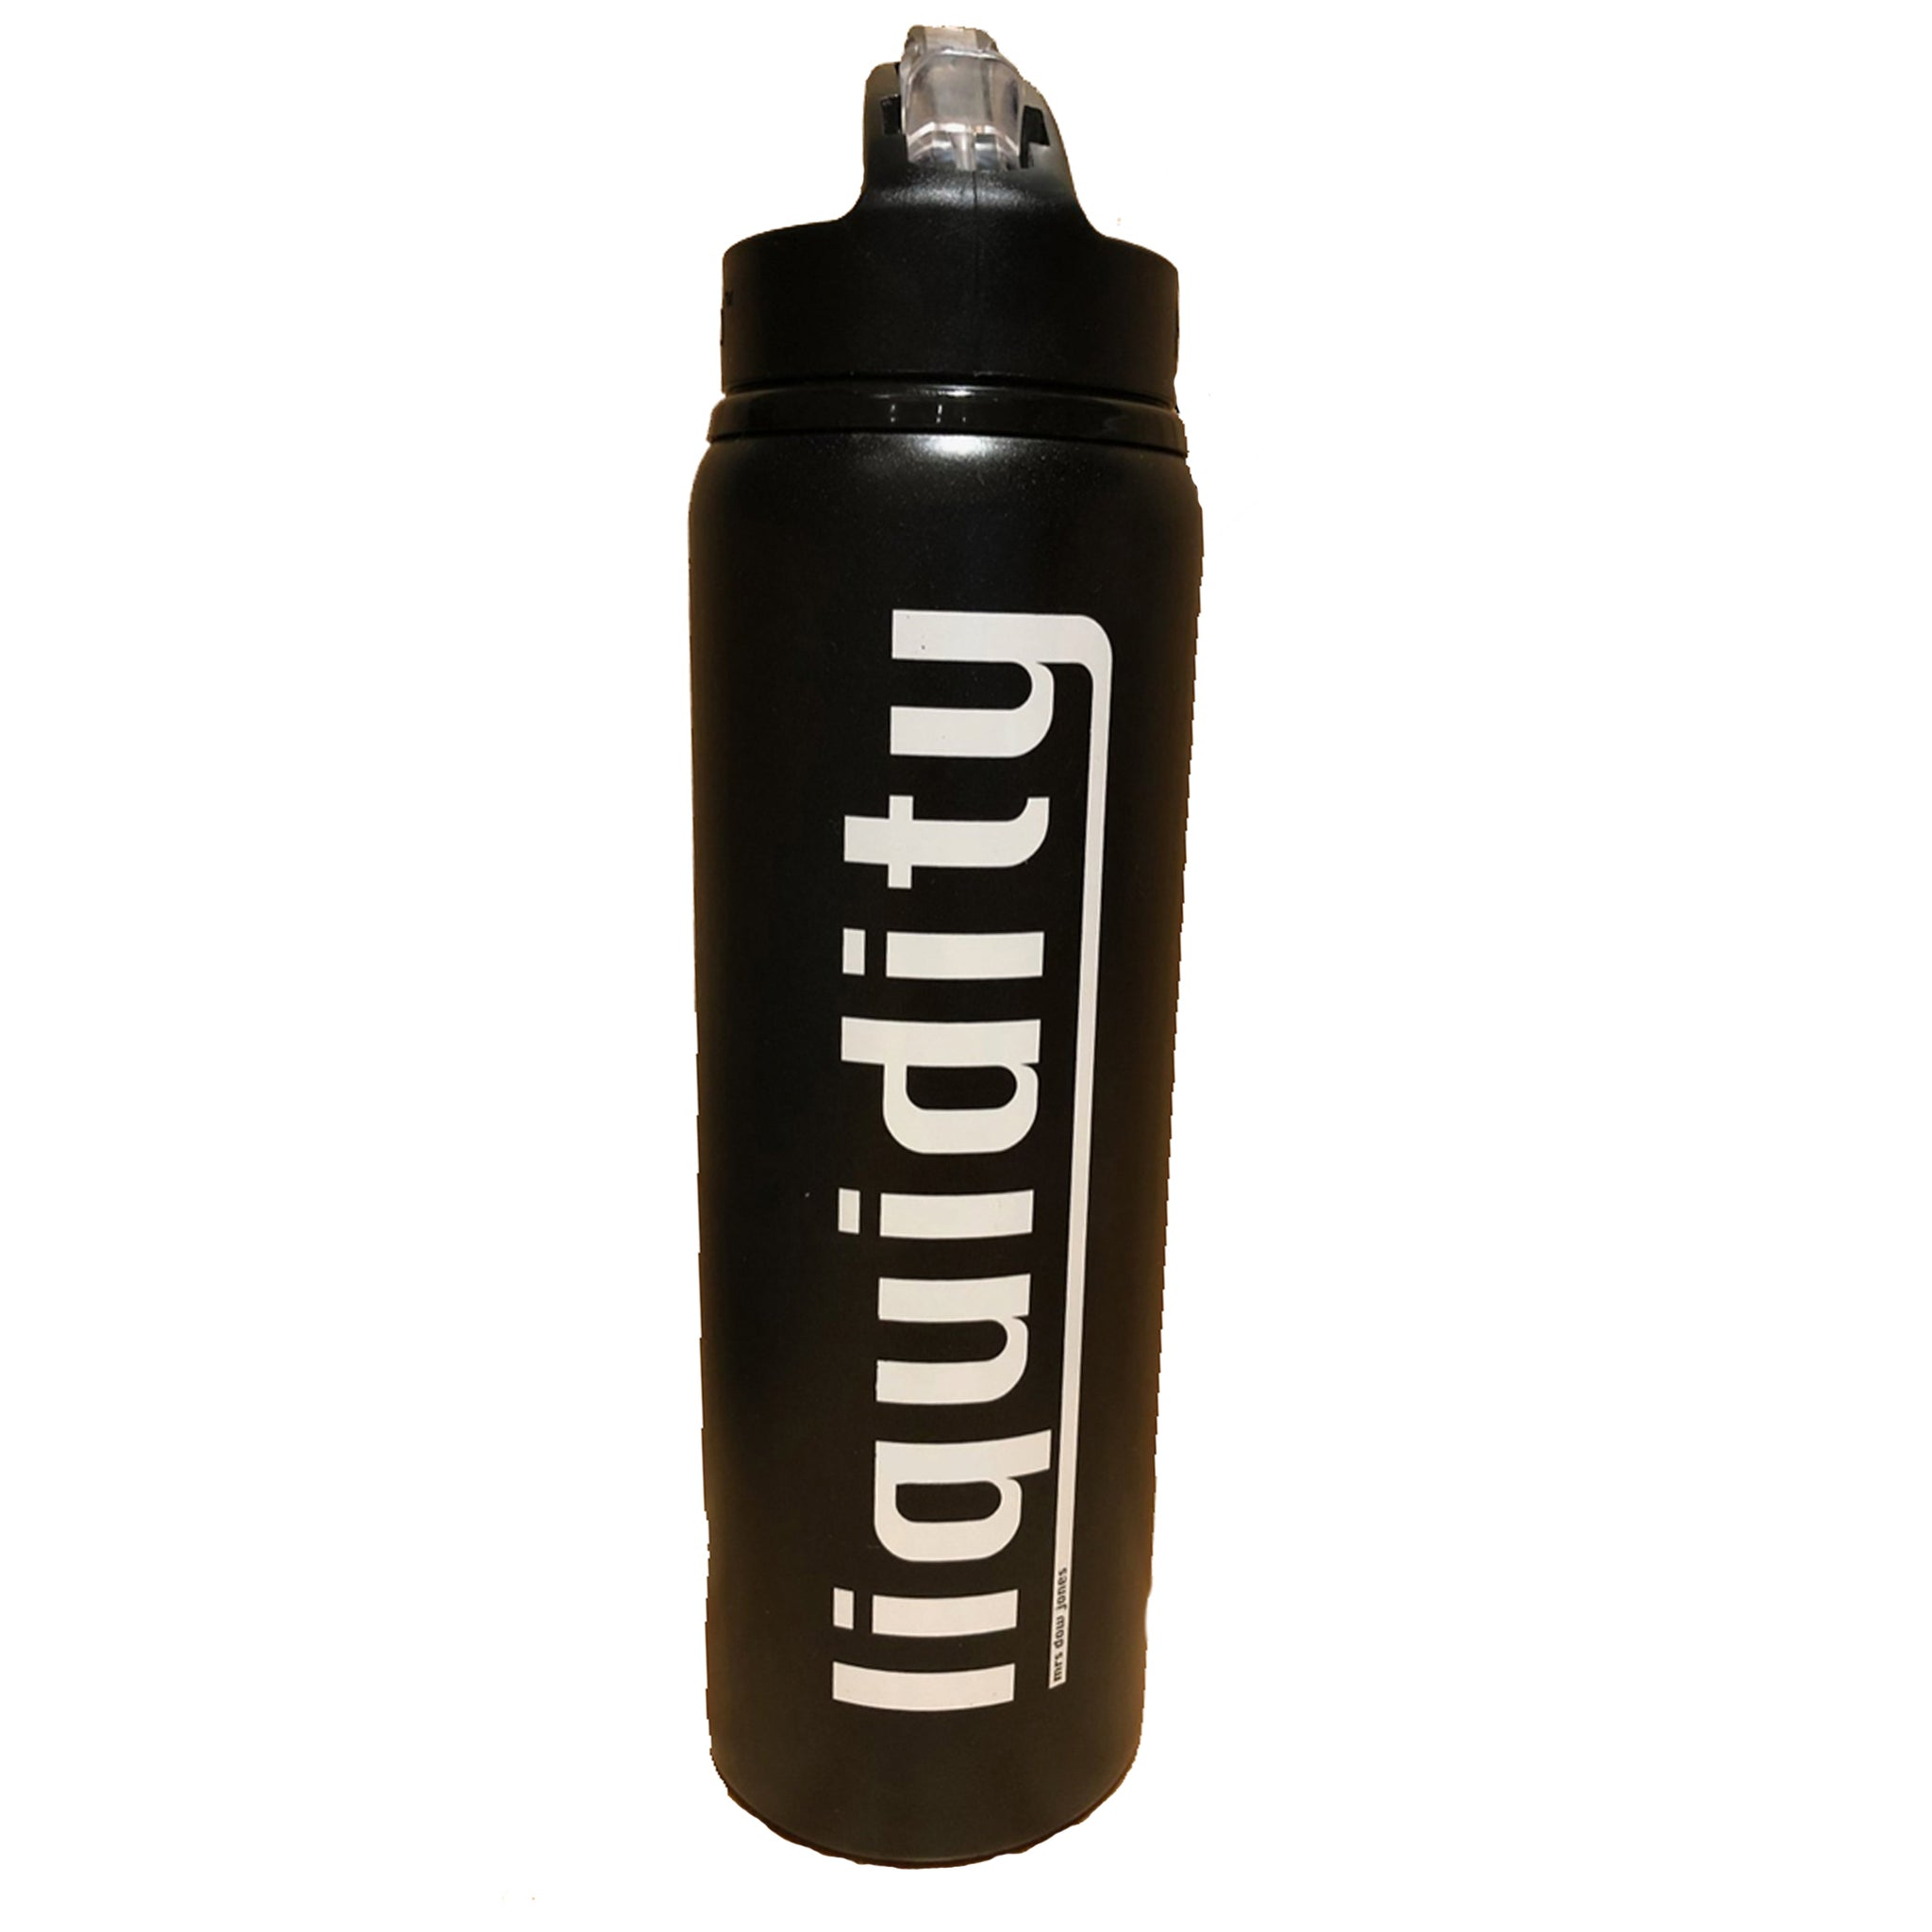 LIQUIDITY WATER BOTTLE - Finance Is Cool